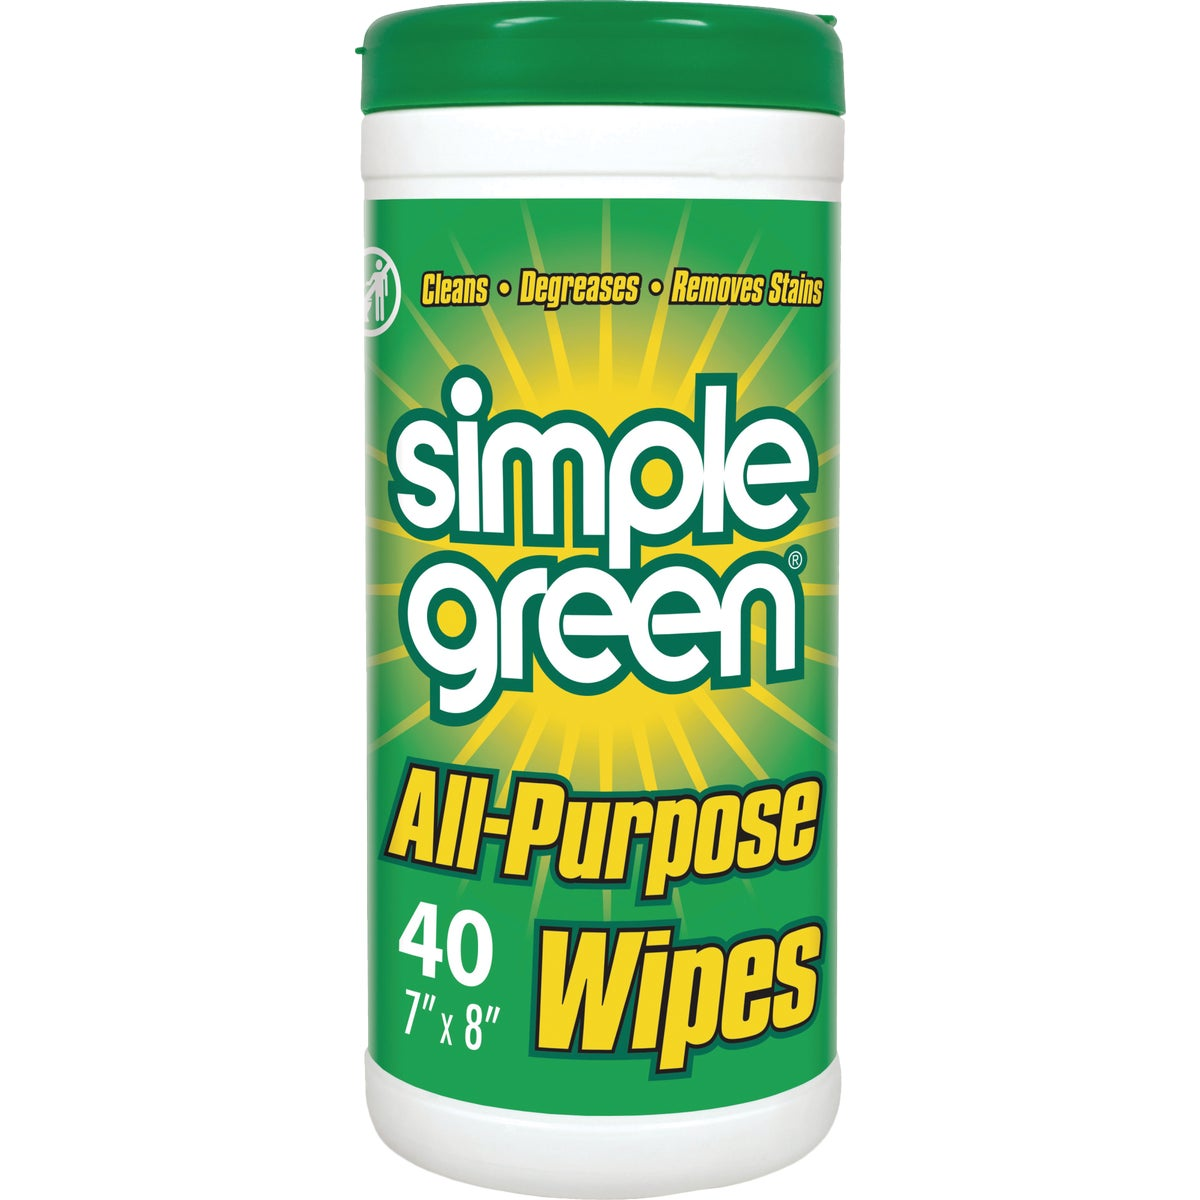 CLEANER WIPES - 3810001213312 by Sunshine Makers Inc